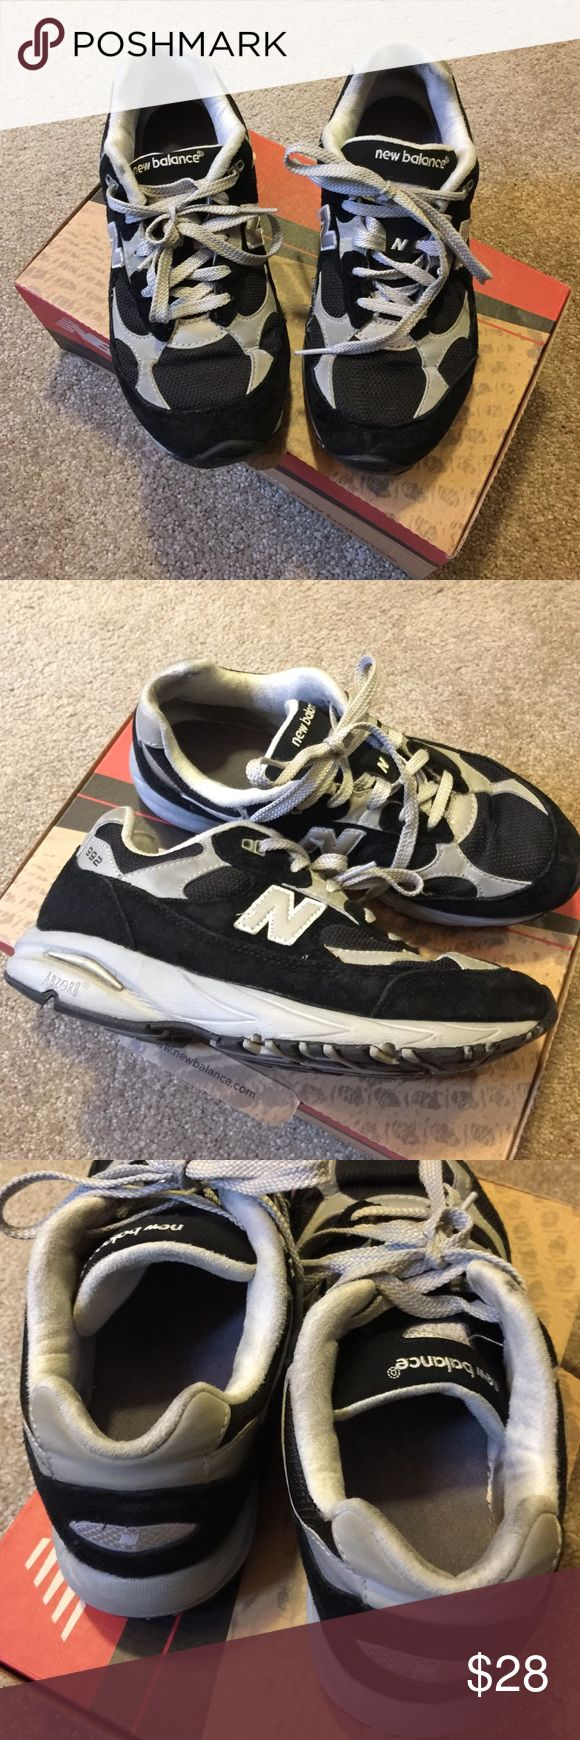 992 New balance Rare 992 new balance black & gray in ok condition.. 5 1/2 Y AND 7 woman's .. New Balance Shoes Sneakers